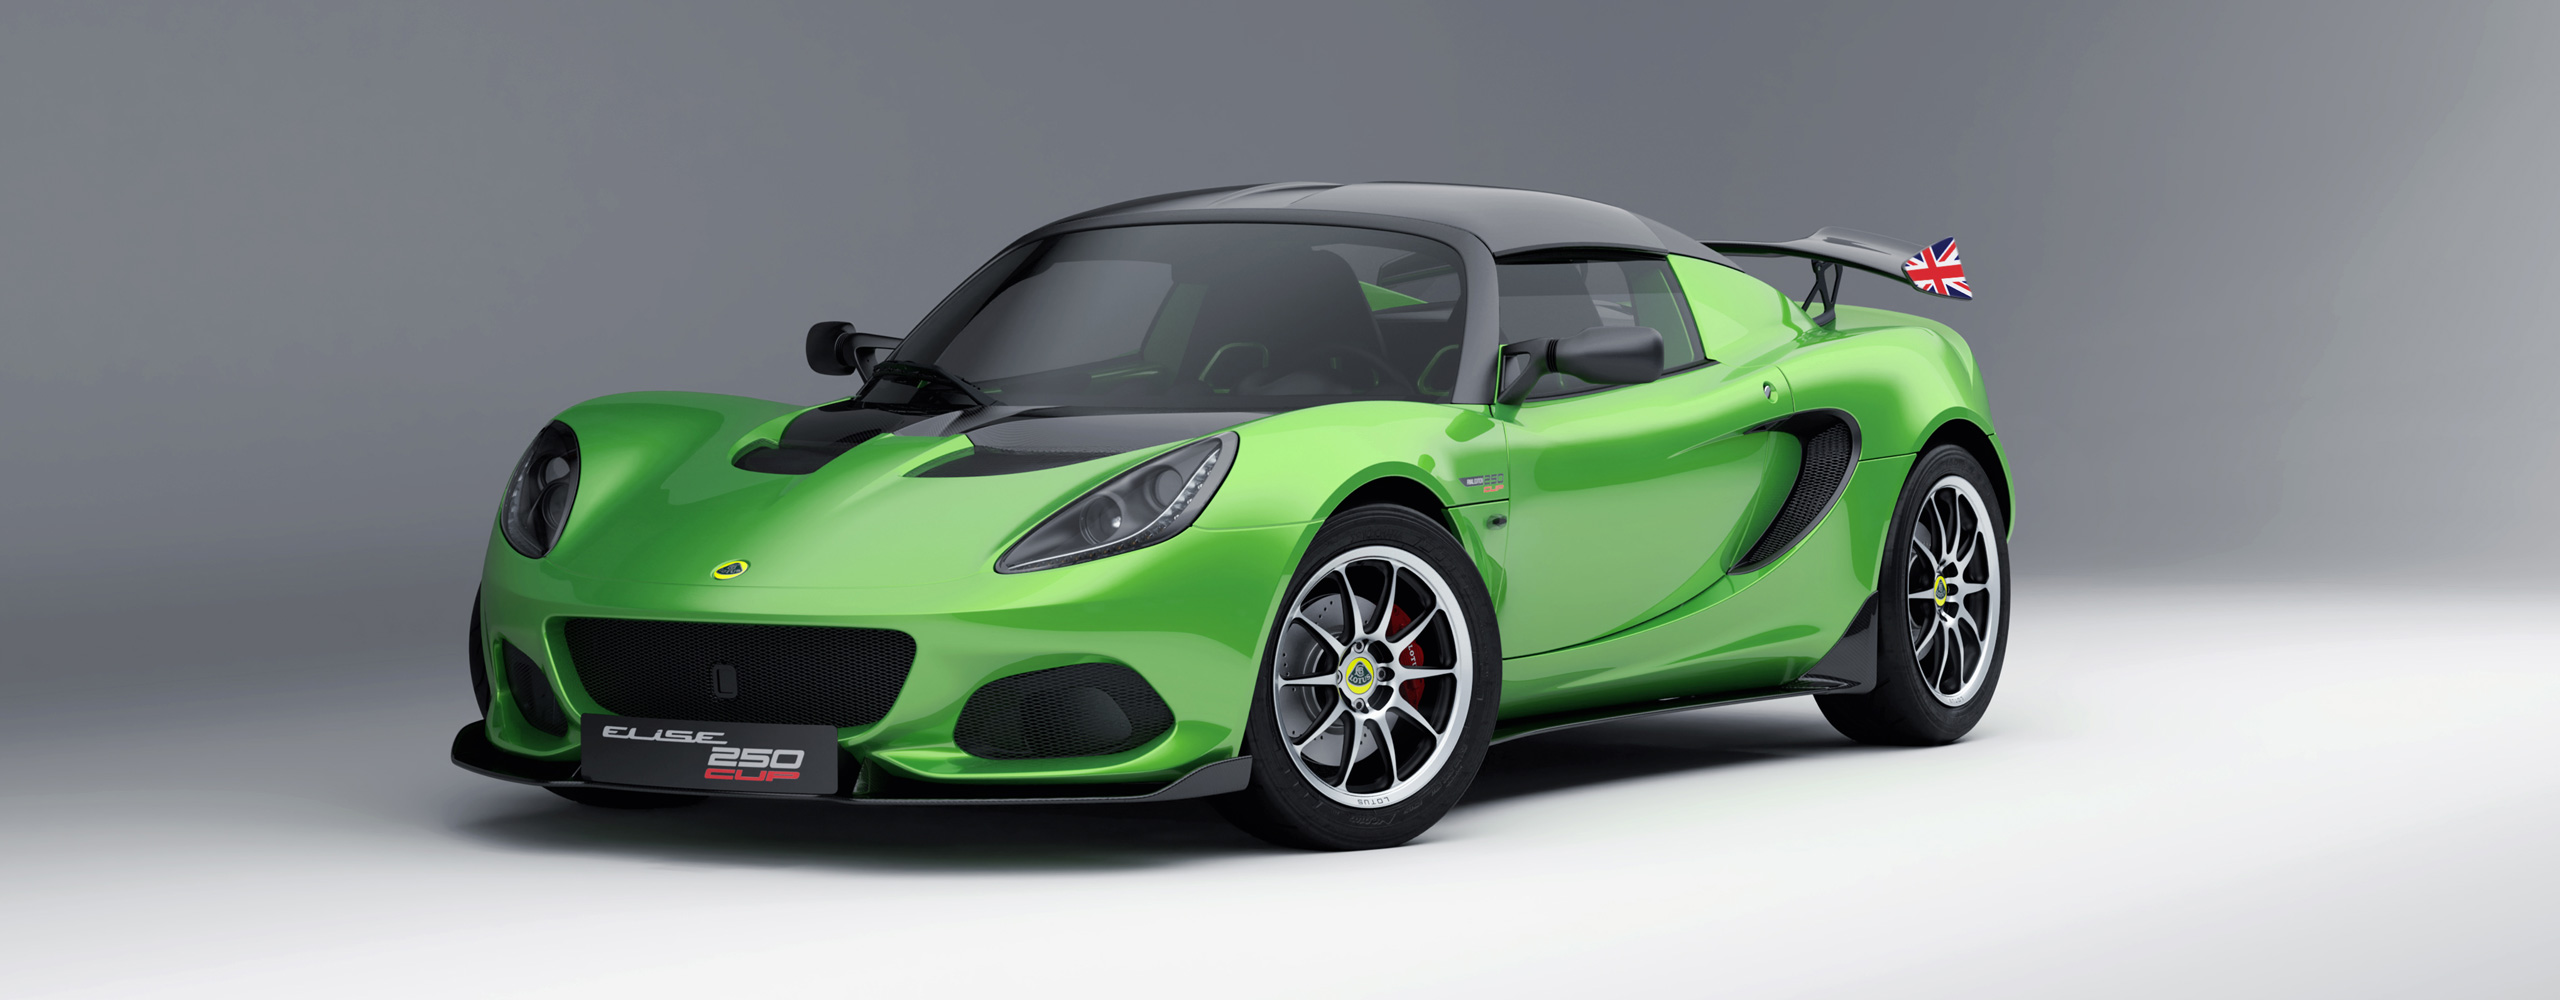 REQUEST : looking for a 3D car model ( Lotus Elise 2016 250 cup edition )